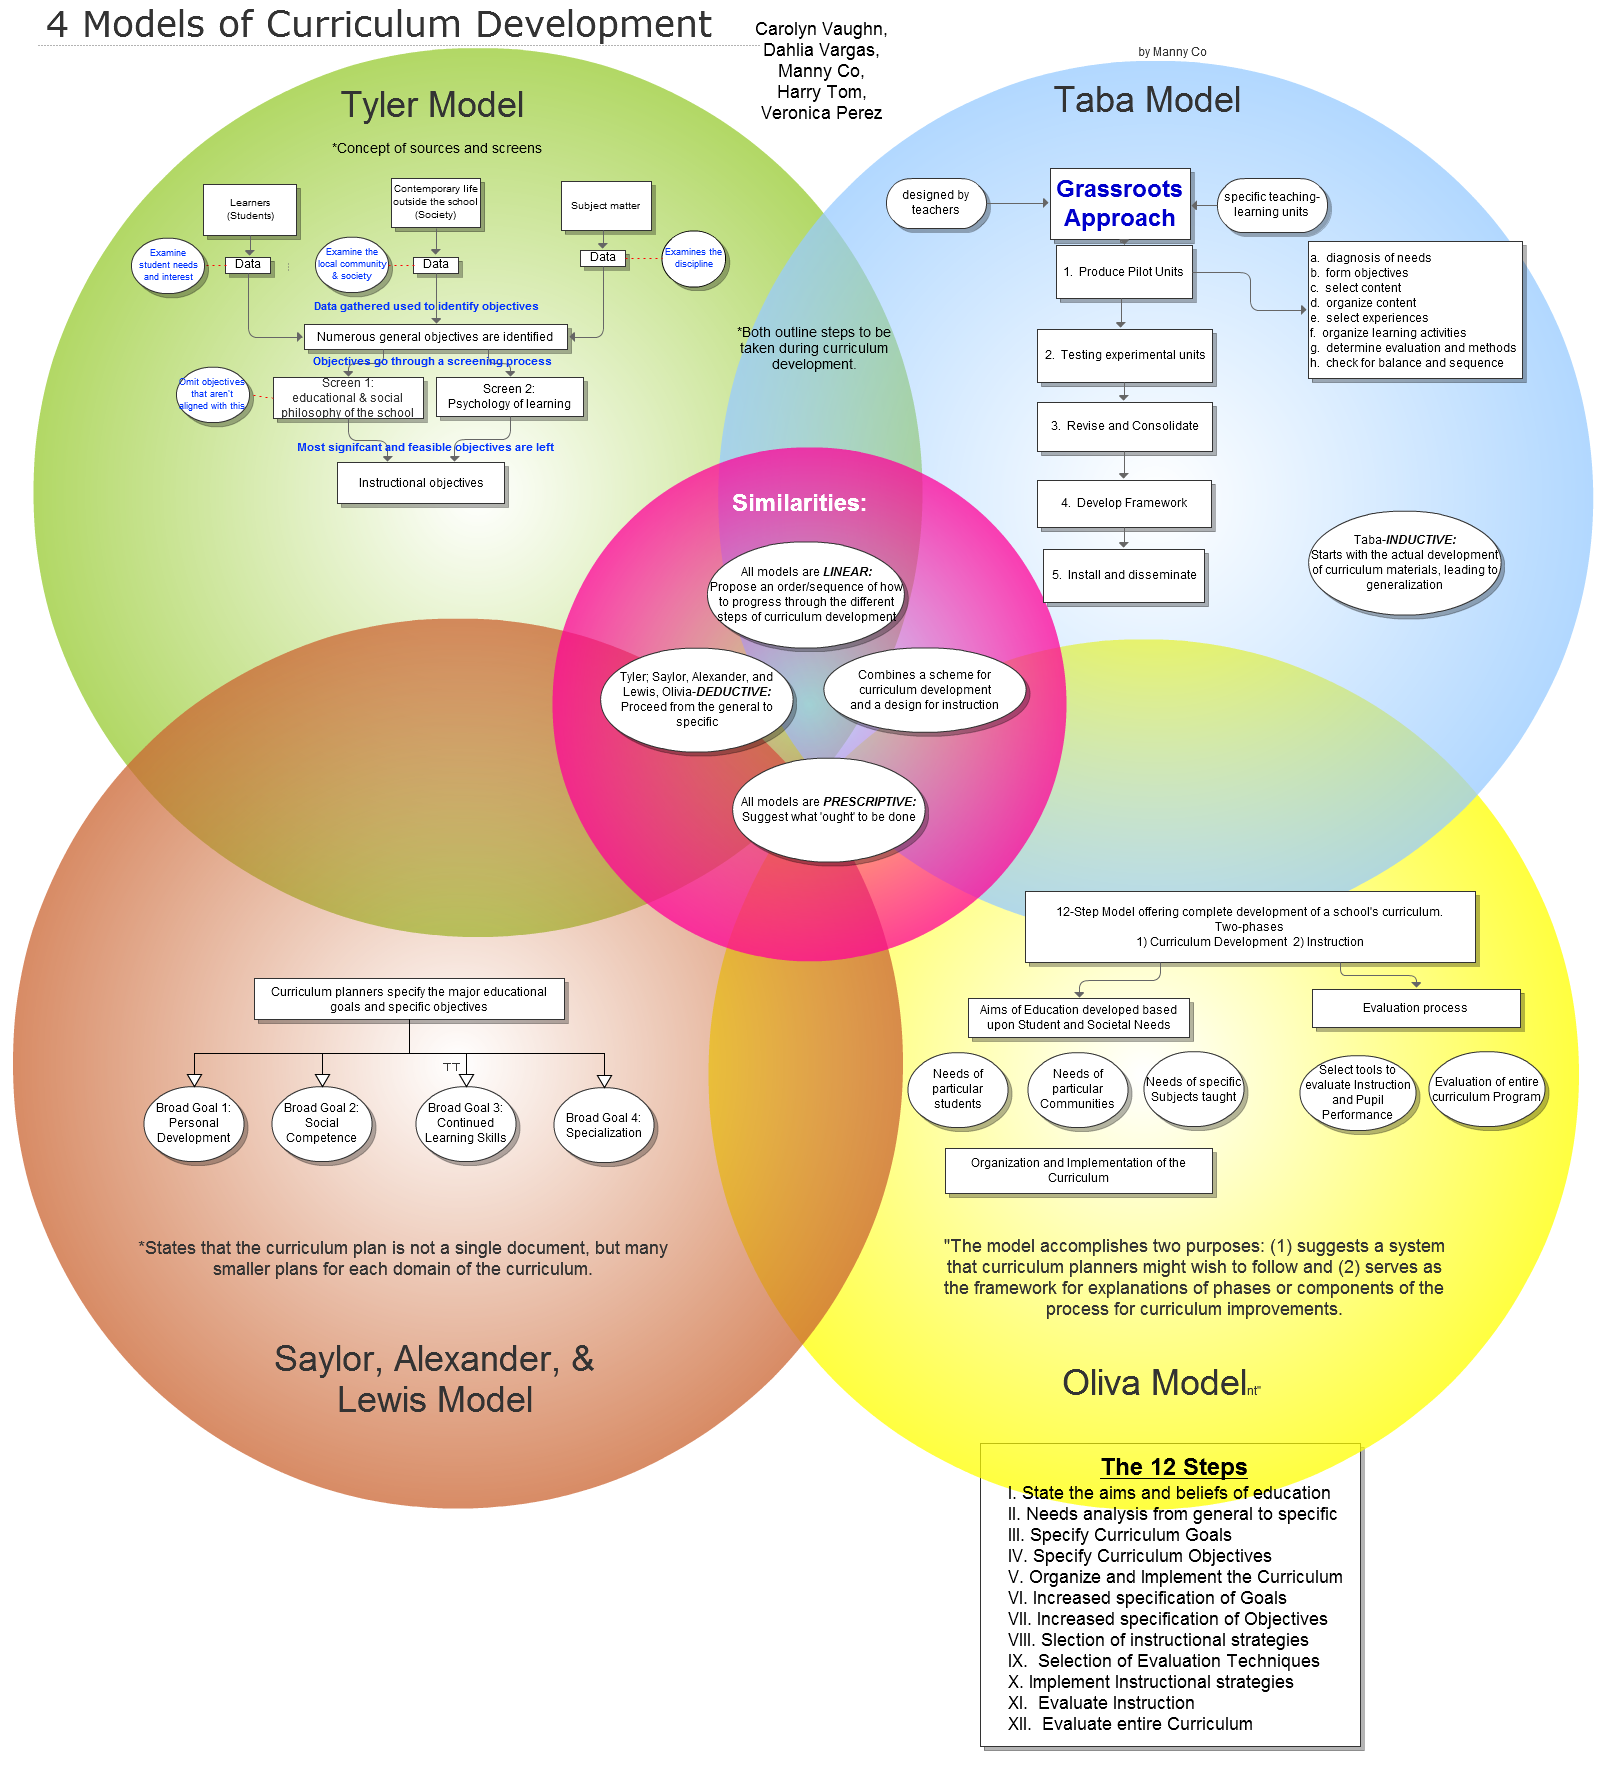 4 models of curriculum development